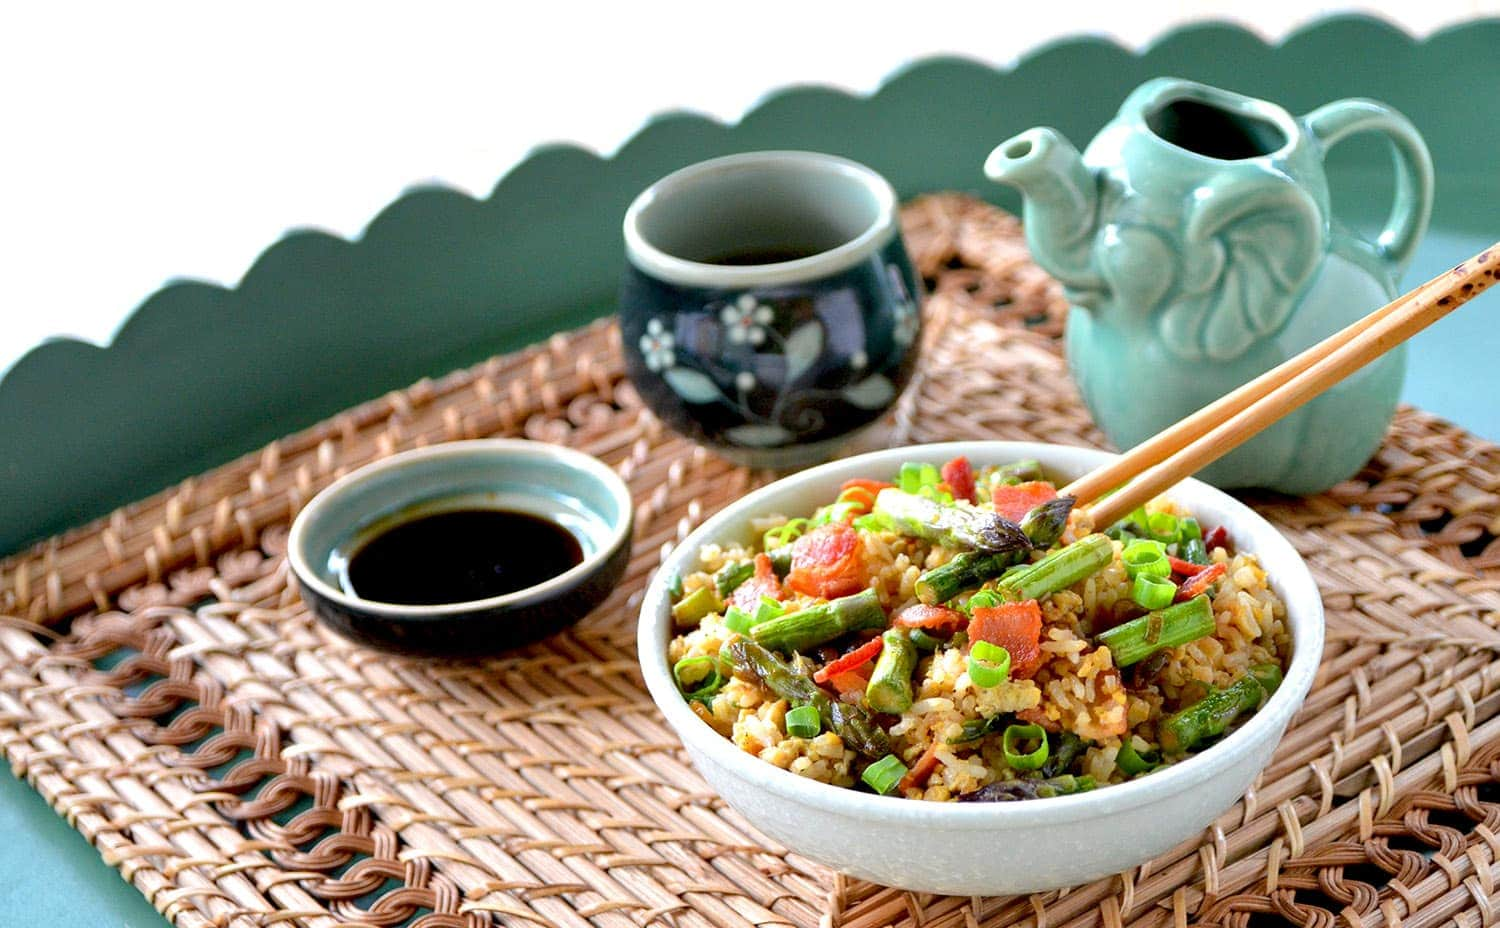 This Breakfast Fried Rice has the good stuff in there....bacon and eggs and best of all, this recipe is easy, fast and only requires 7 simple ingredients. | vintagekitty.com